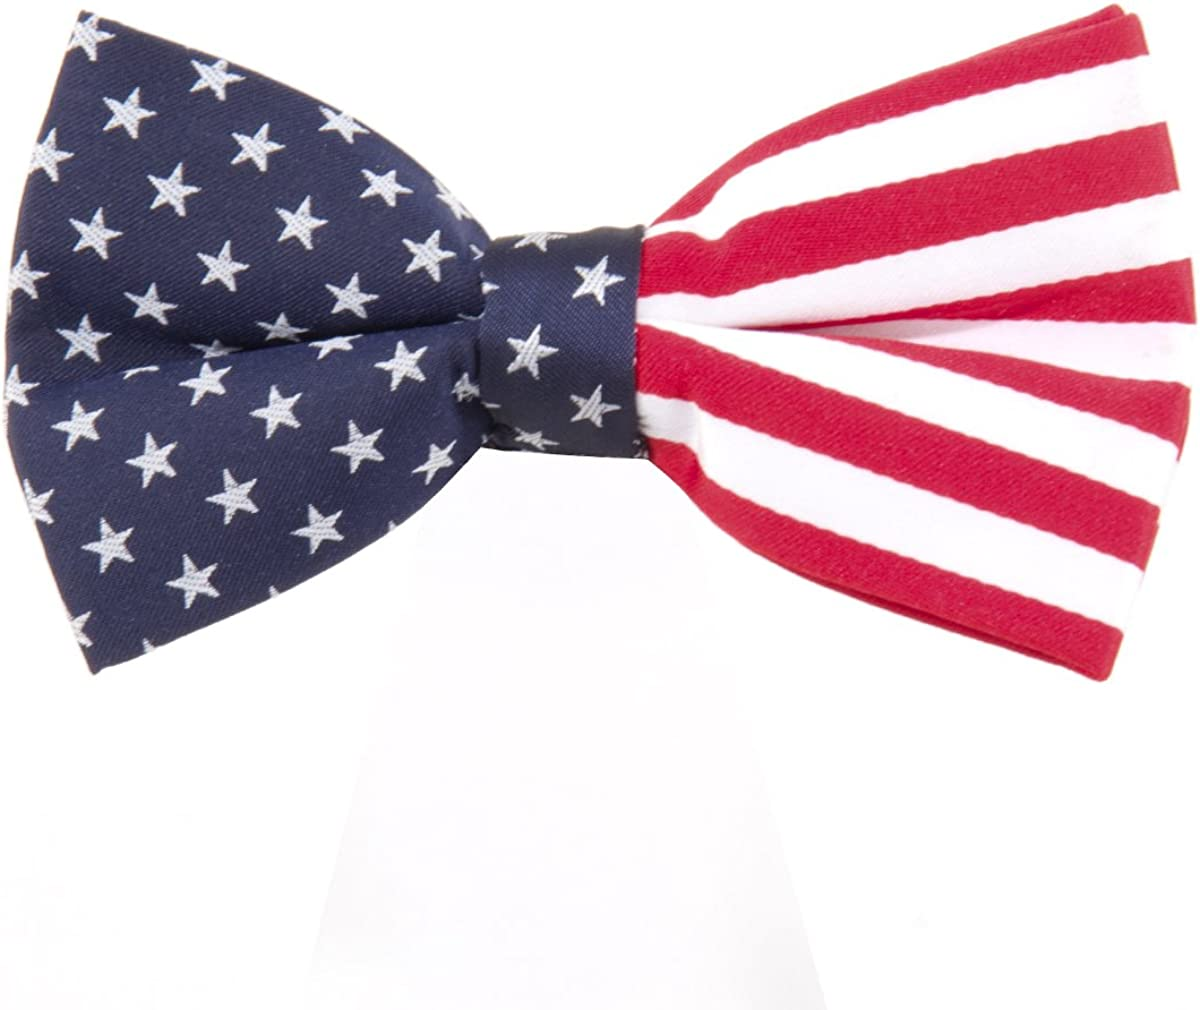 American Woven Polyester Pre-tied Bow Tie Made By Eagles Wings